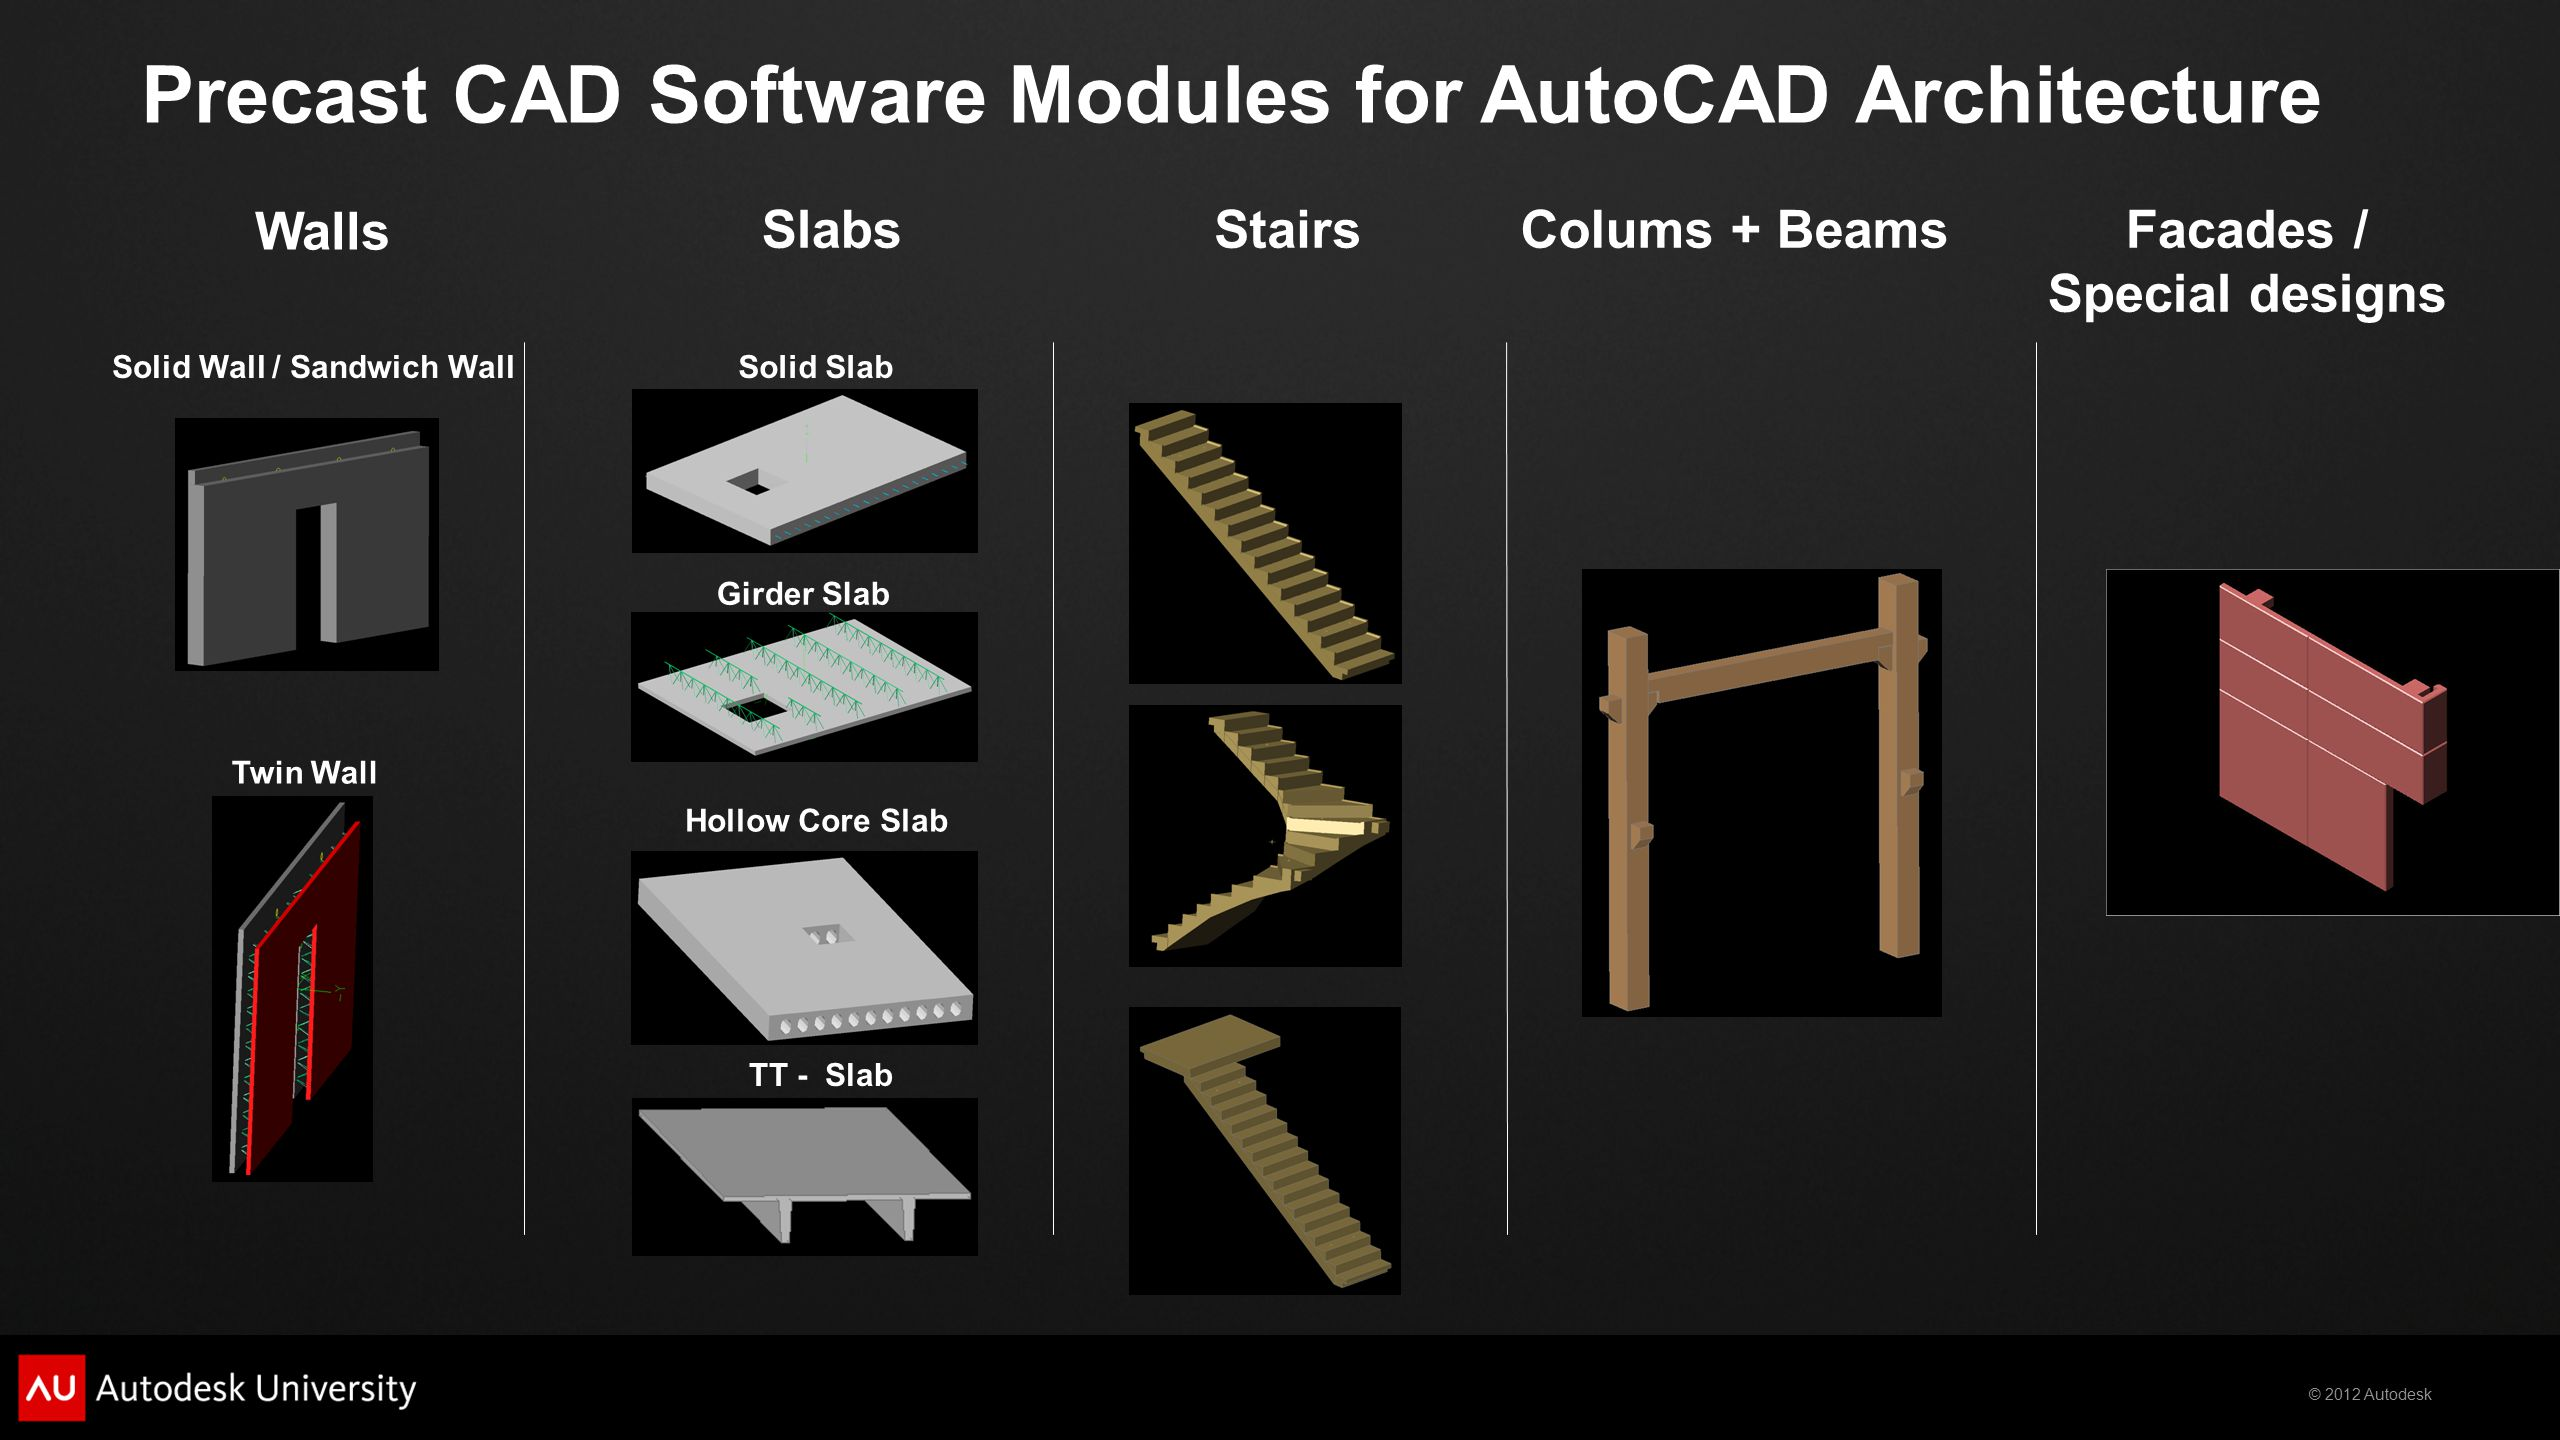 Precast CAD Software Modules for AutoCAD Architecture